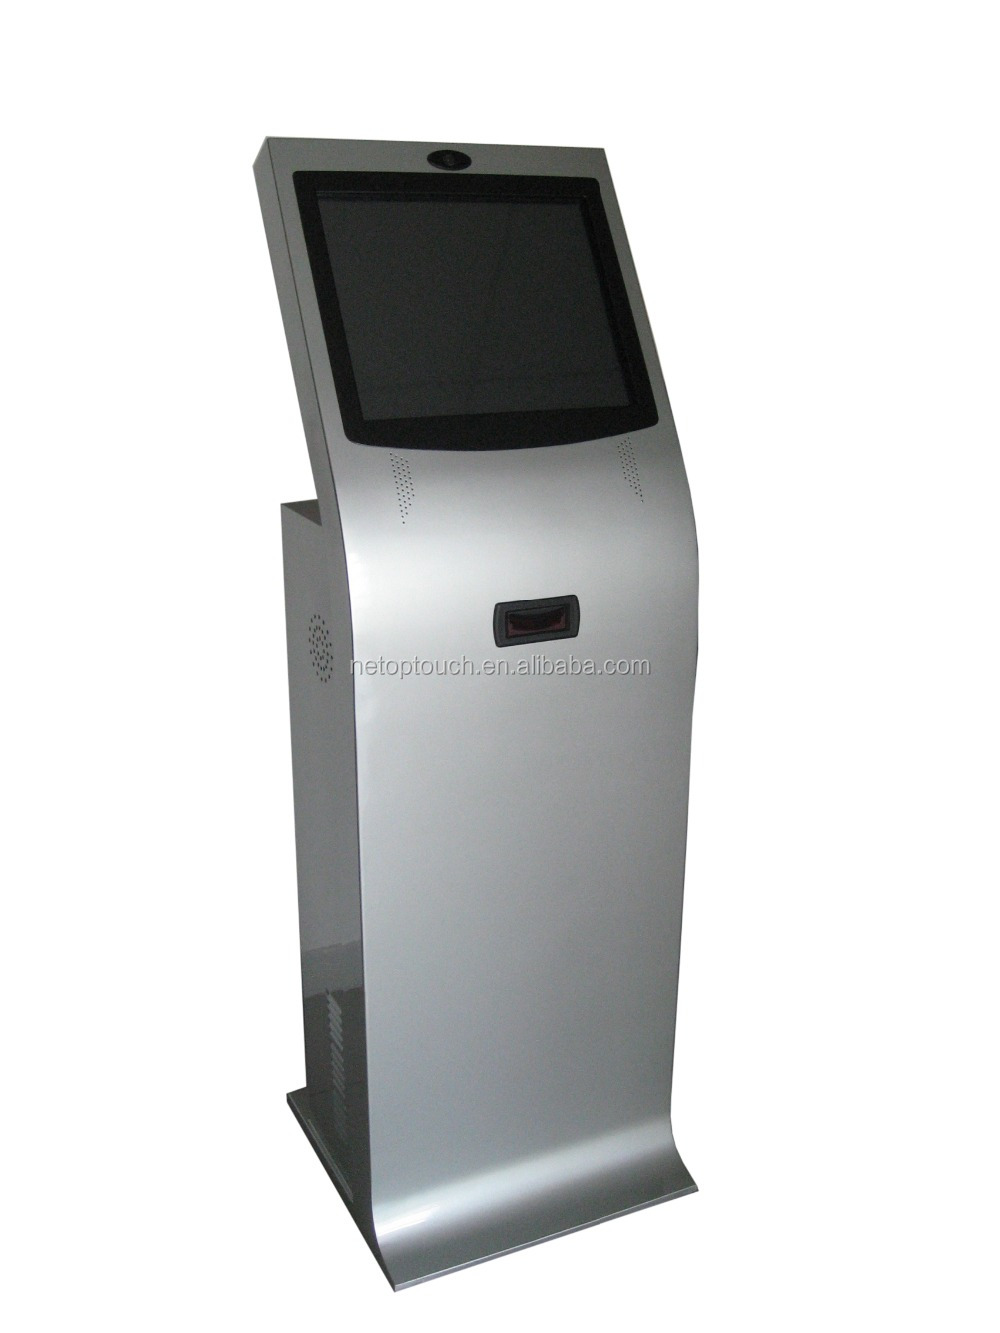 High quality custom self service pay kiosk touch